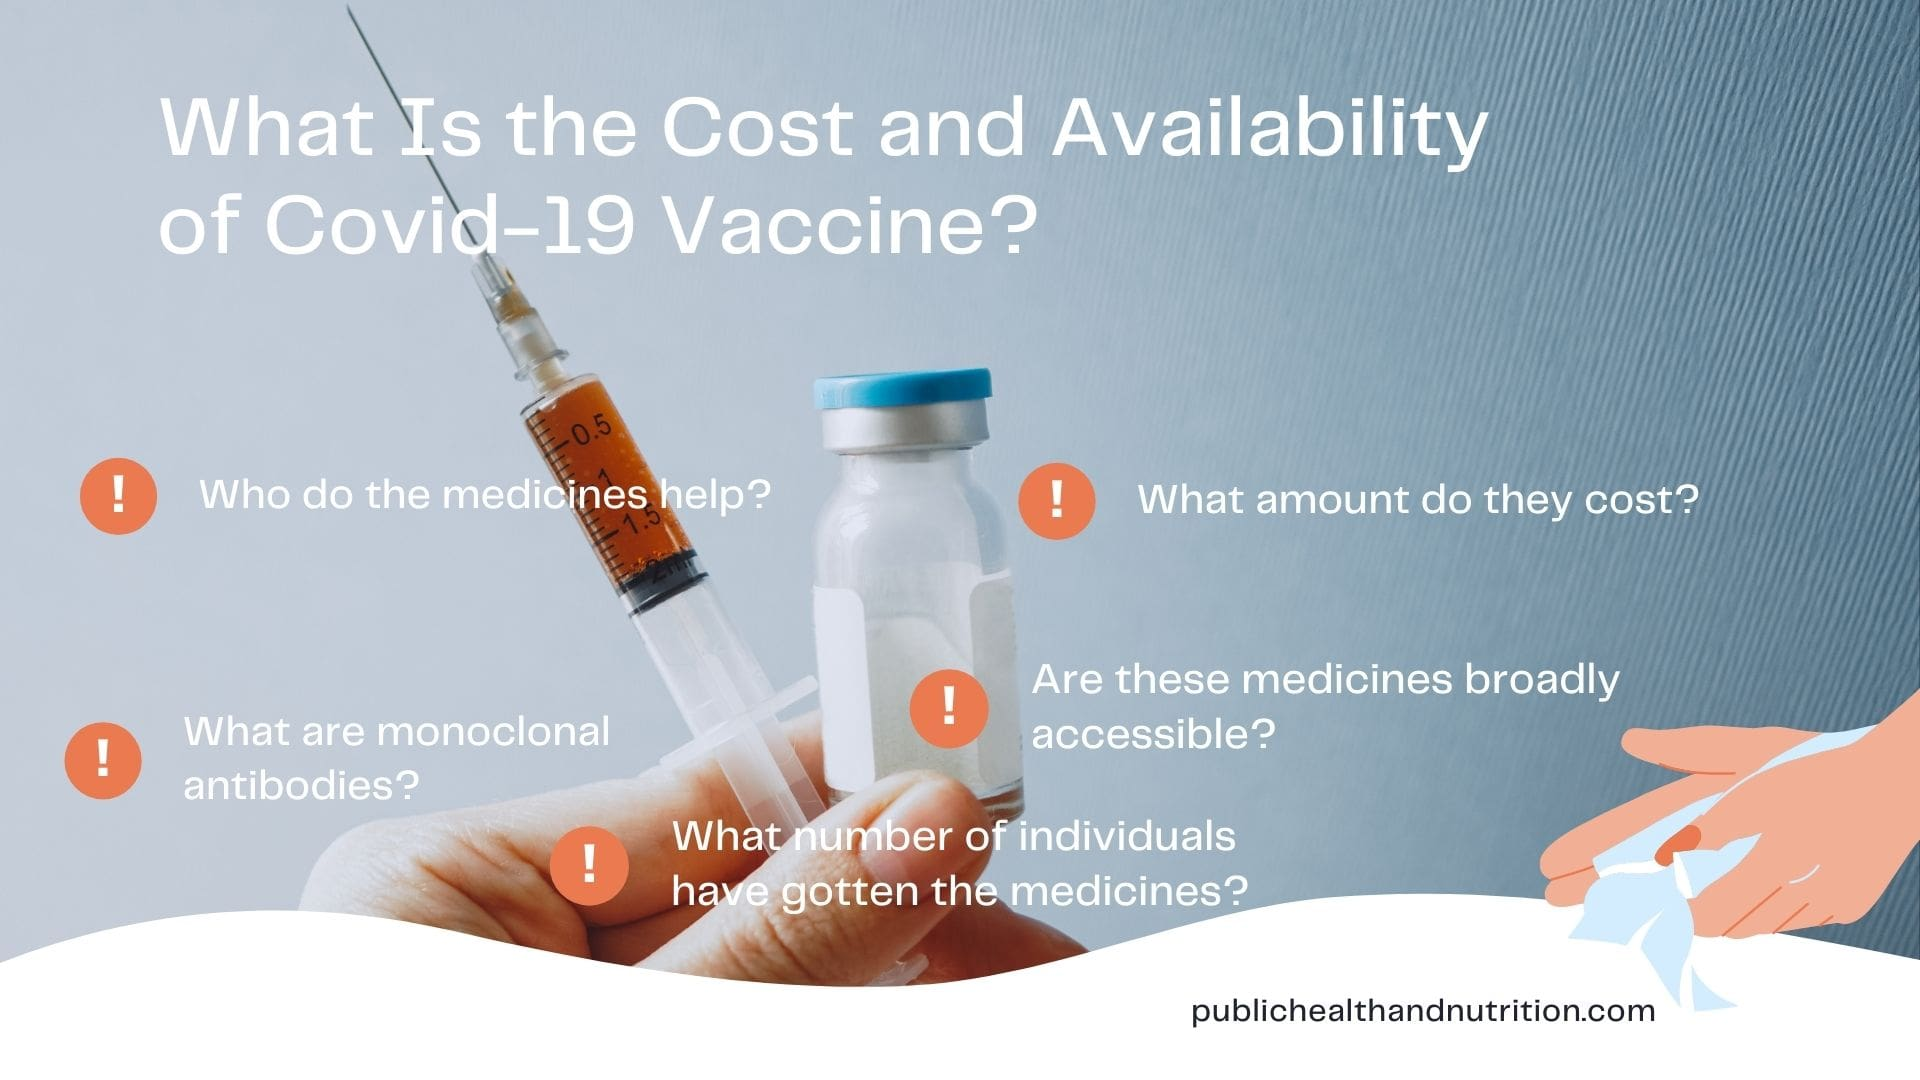 Cost and Availability of Covid-19 Vaccine